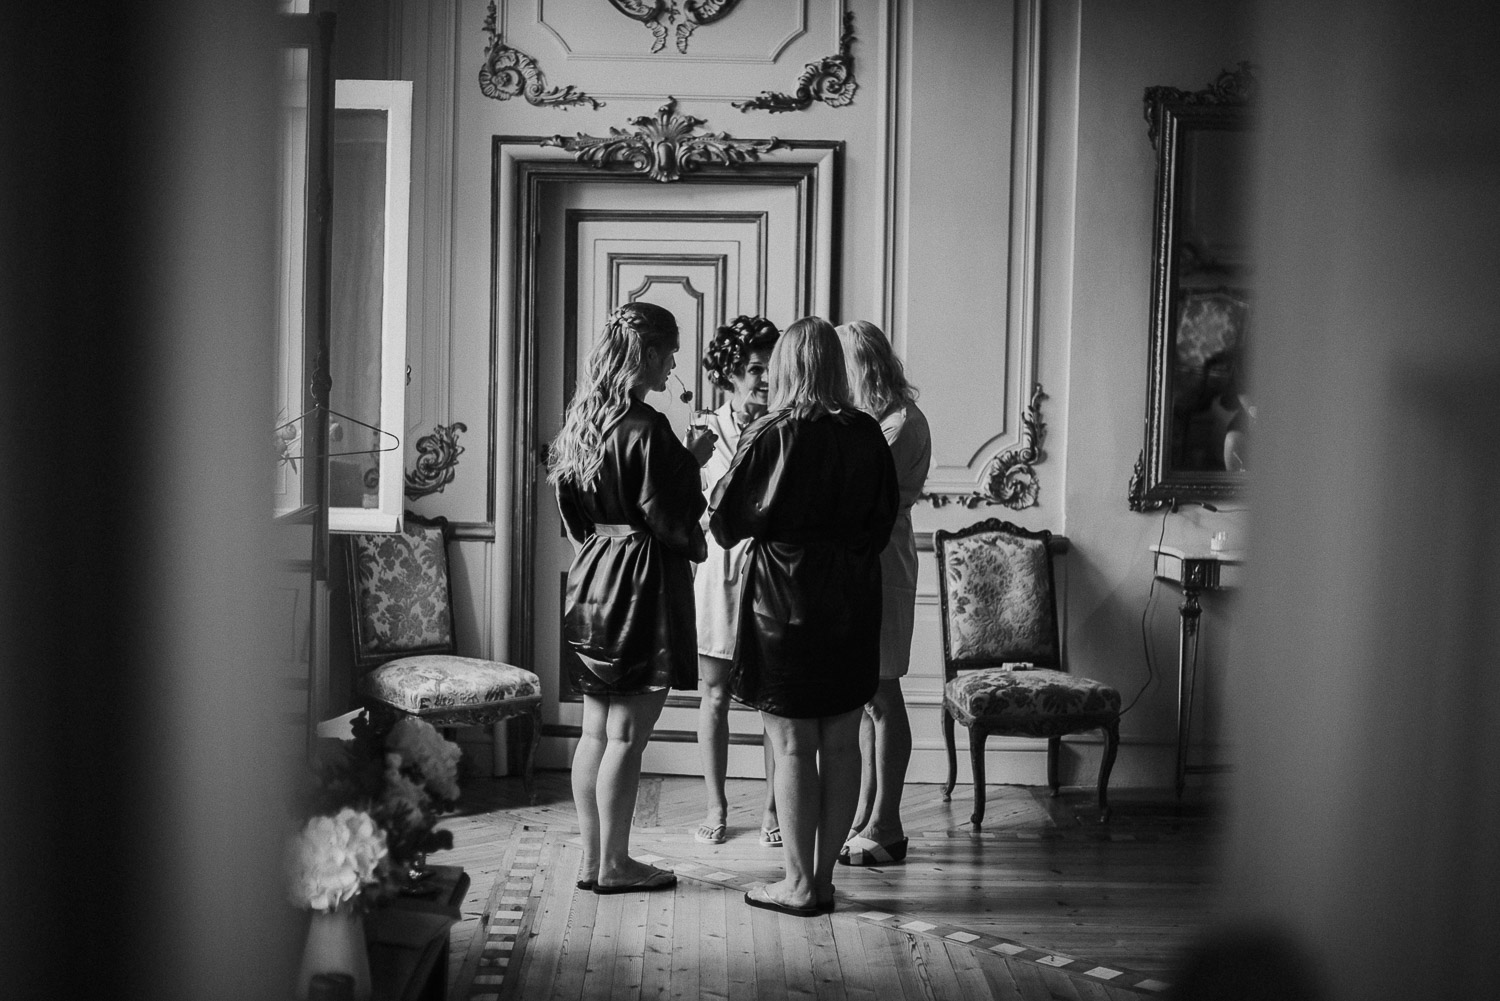 chateau_de_lisse_gers_gascony_south_west_france_family_wedding_katy_webb_photography_UK11